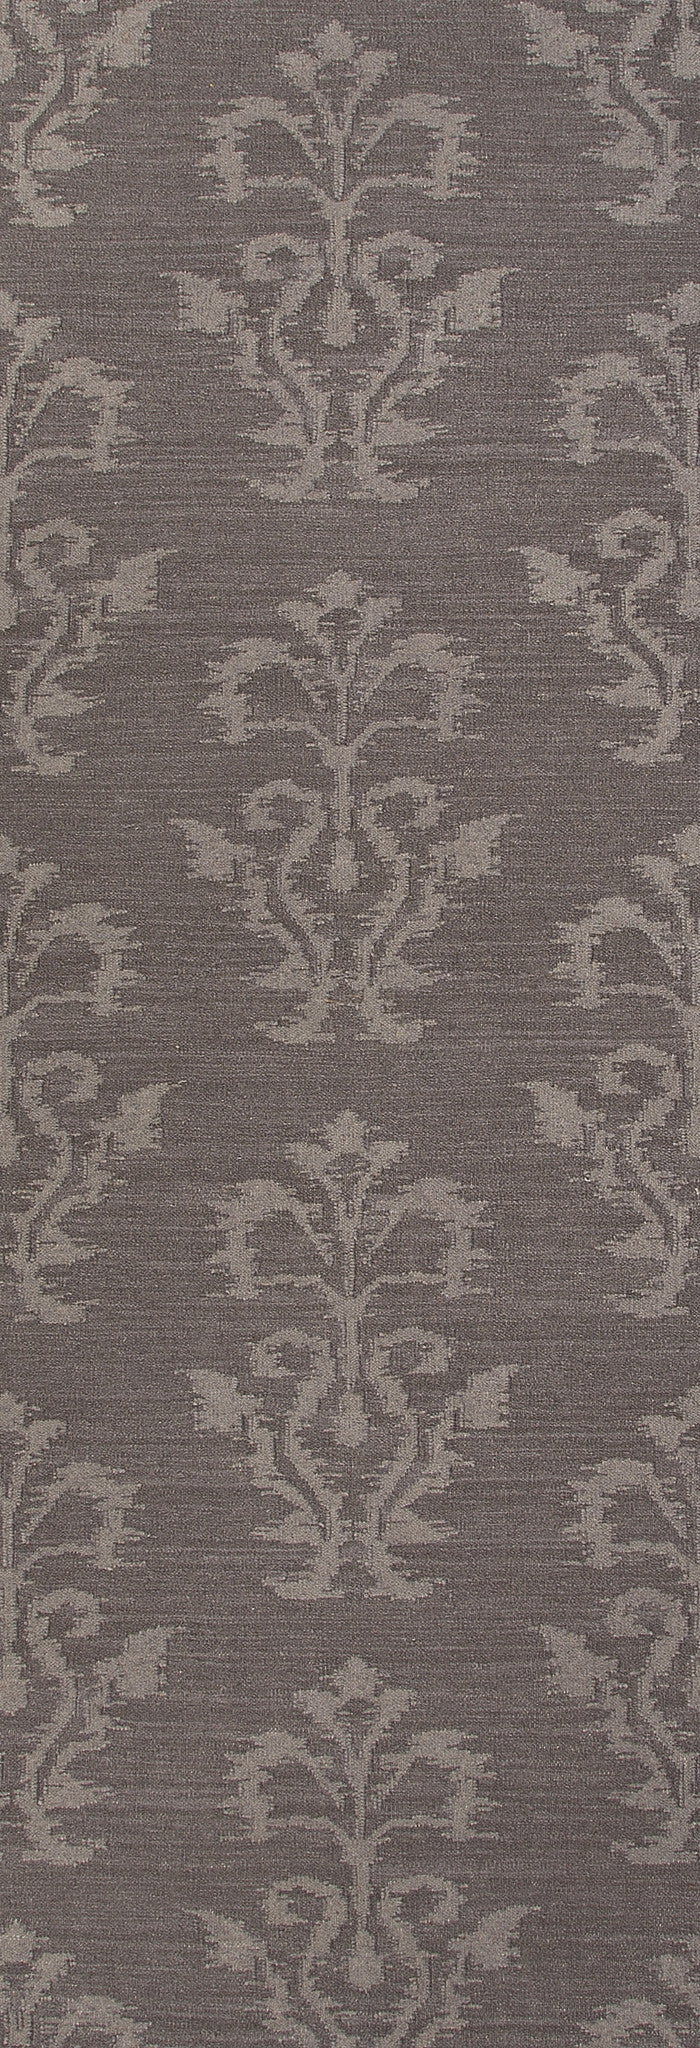 Jaipur Rugs Flat-Weave Tribal Pattern Gray Wool Area Rug